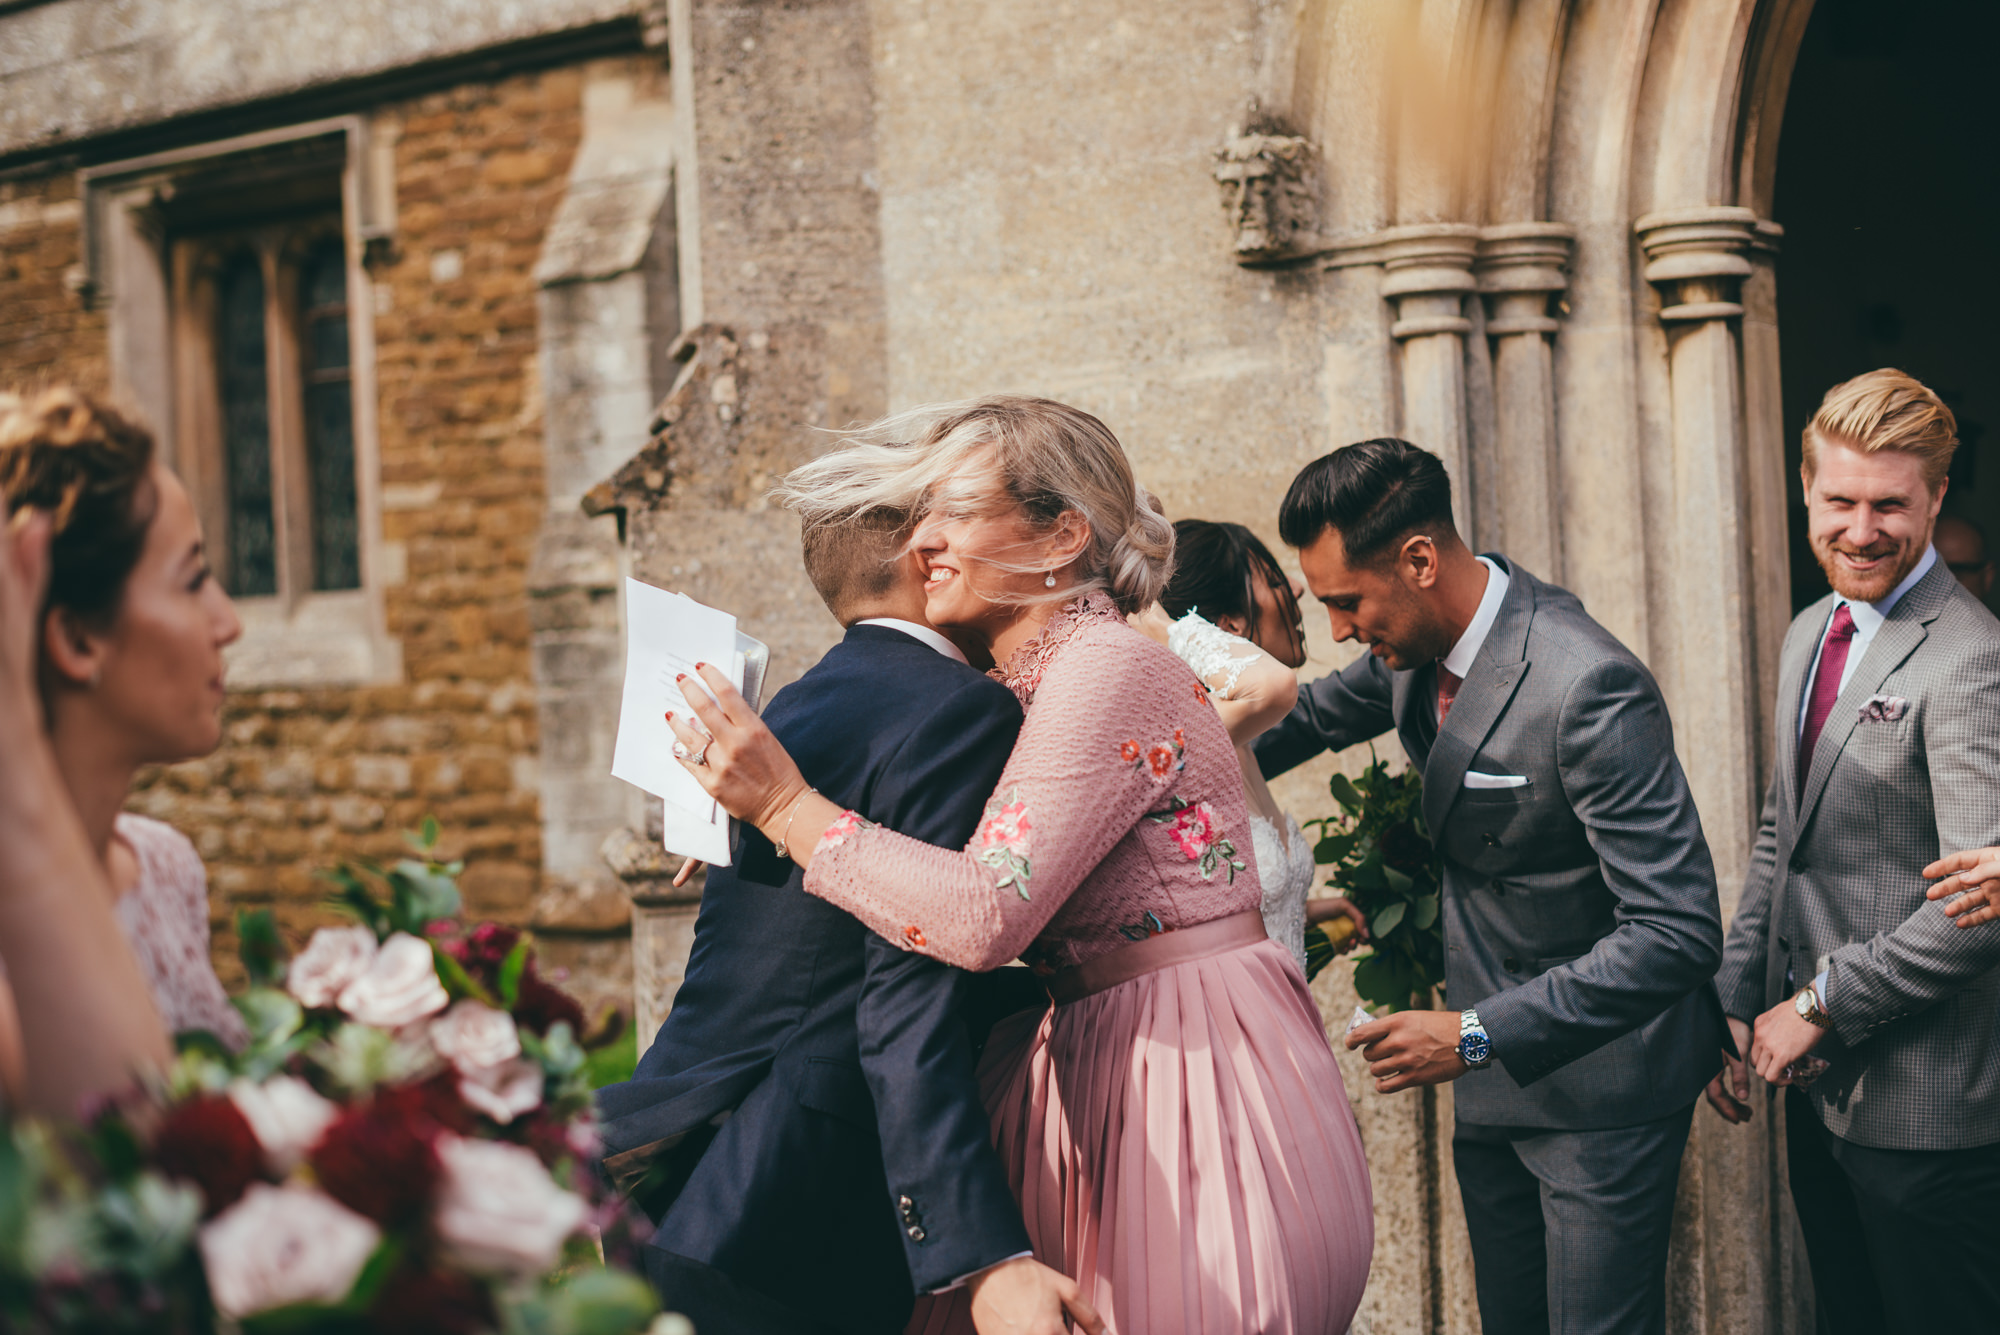 guests hugging after the wedding ceremony